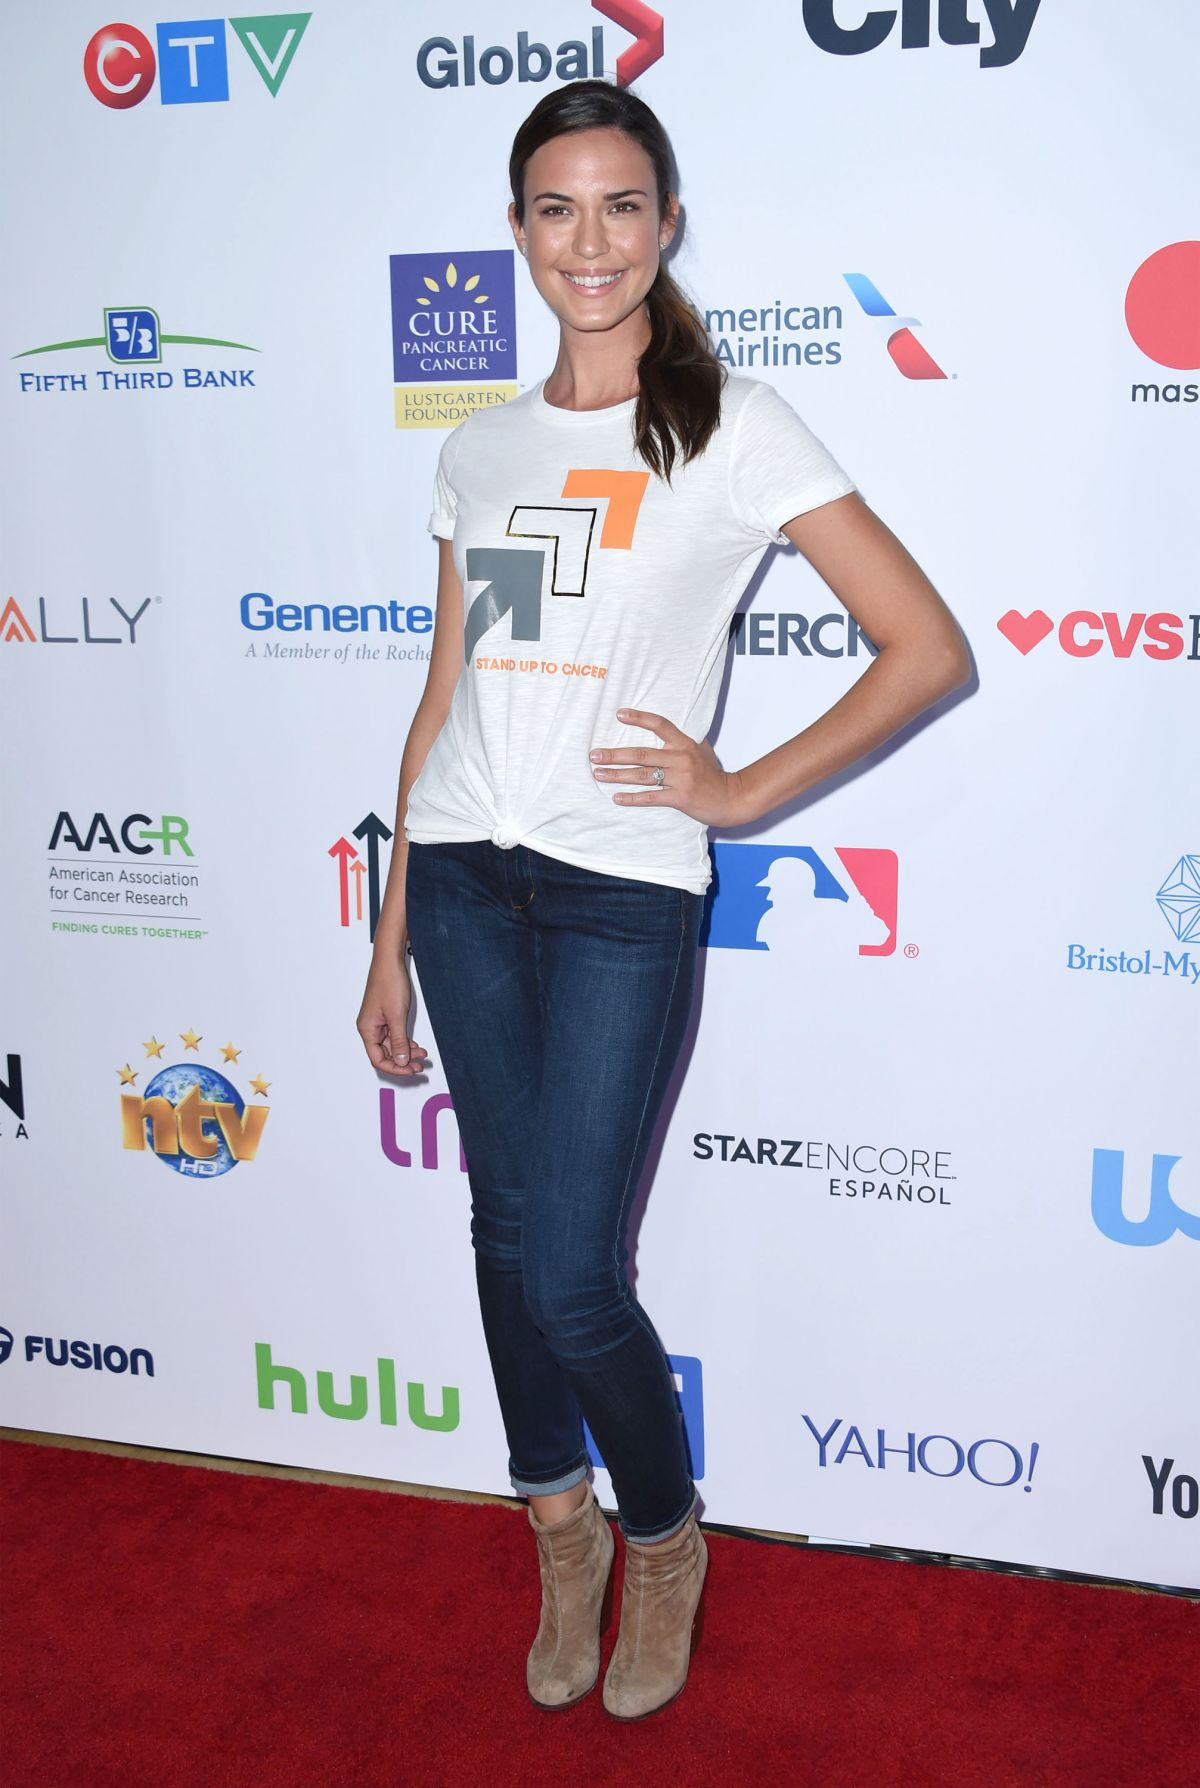 Odette Annable At 5th Biennial Stand Up To Cancer at Walt Disney Concert Hall in Los Angeles, CA   odette-annable-at-5th-biennial-stand-up-to-cancer-at-walt-disney-concert-hall-in-los-angeles-ca_5